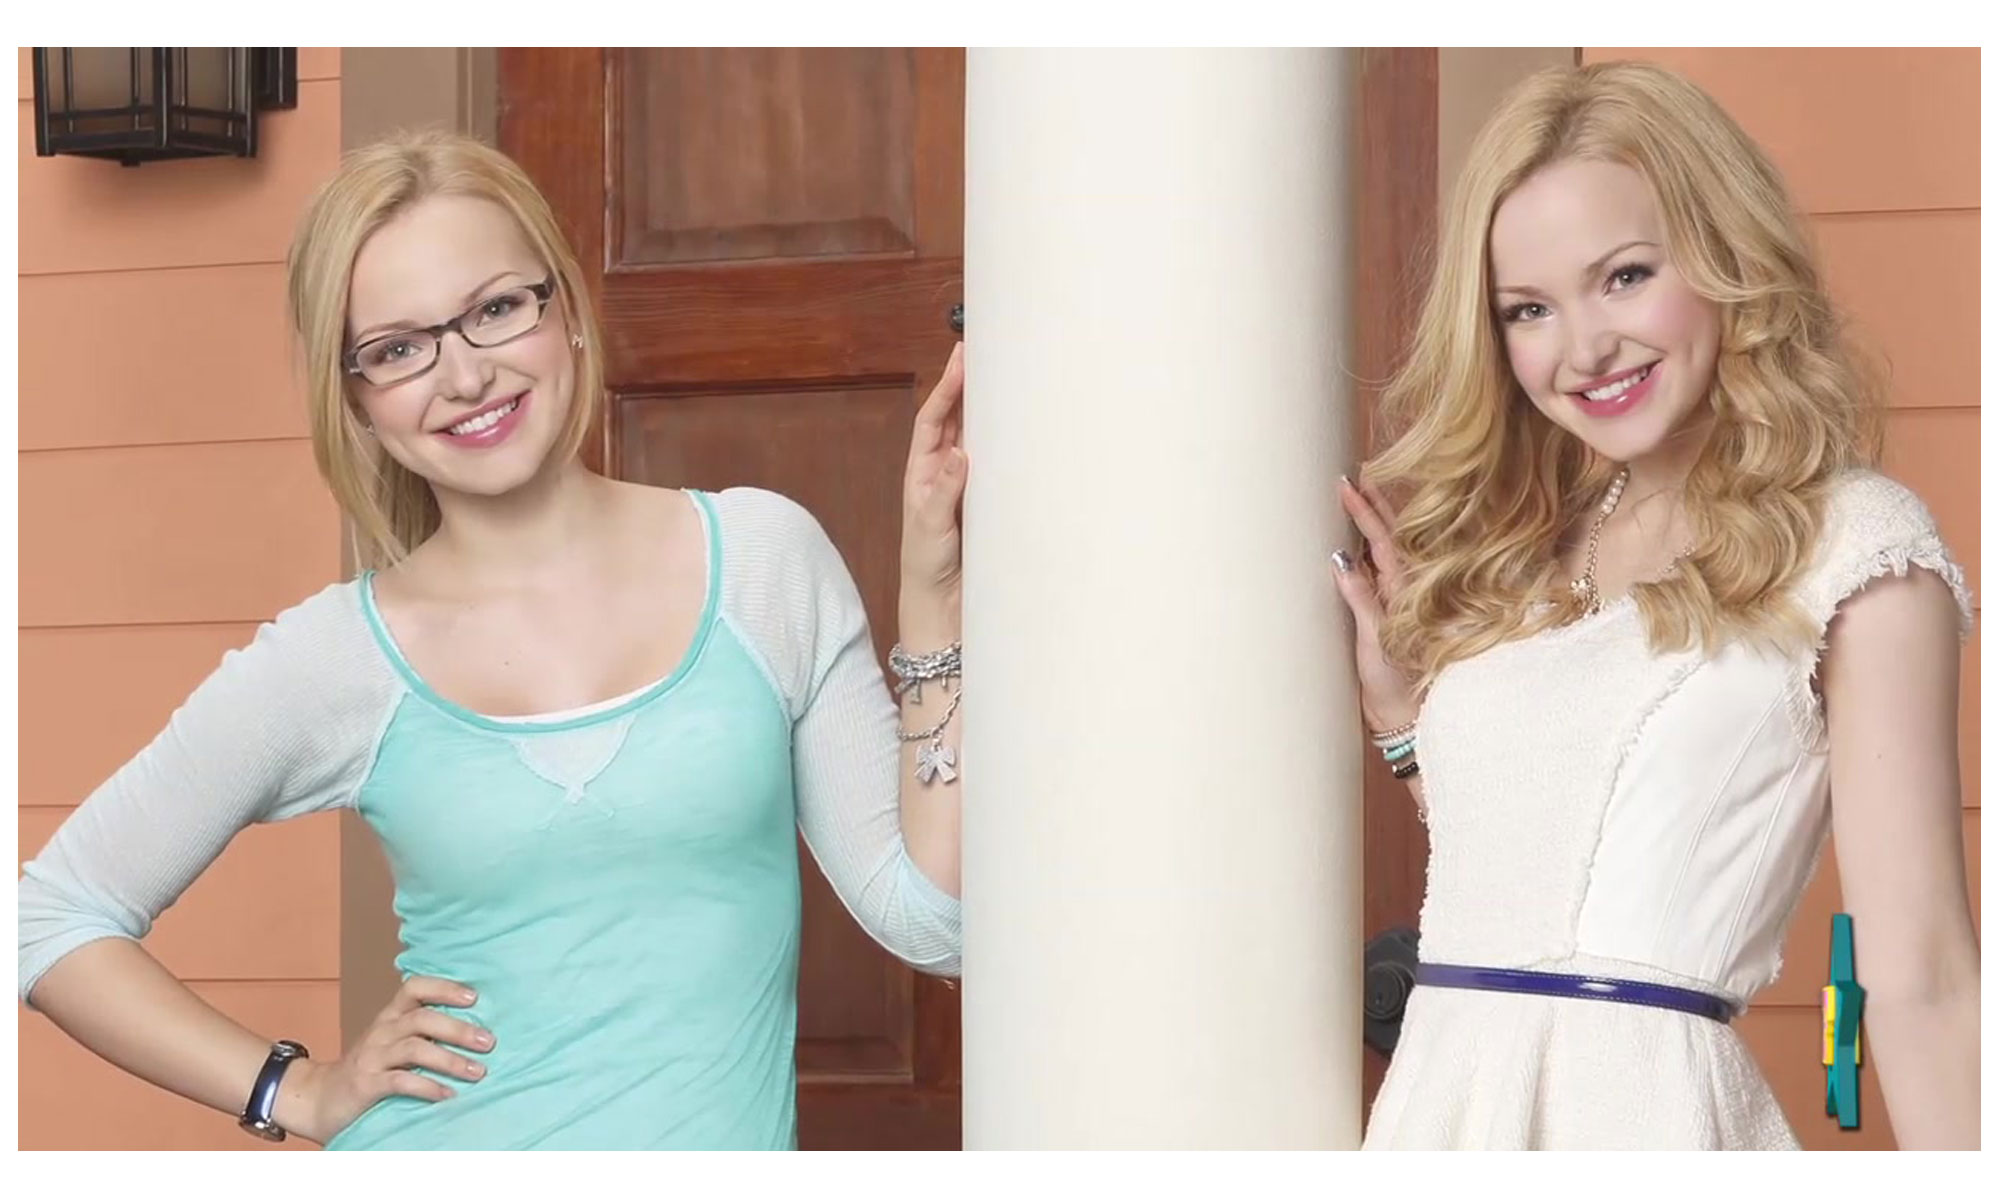 Dove cameron liv and maddie theme song - photo#28